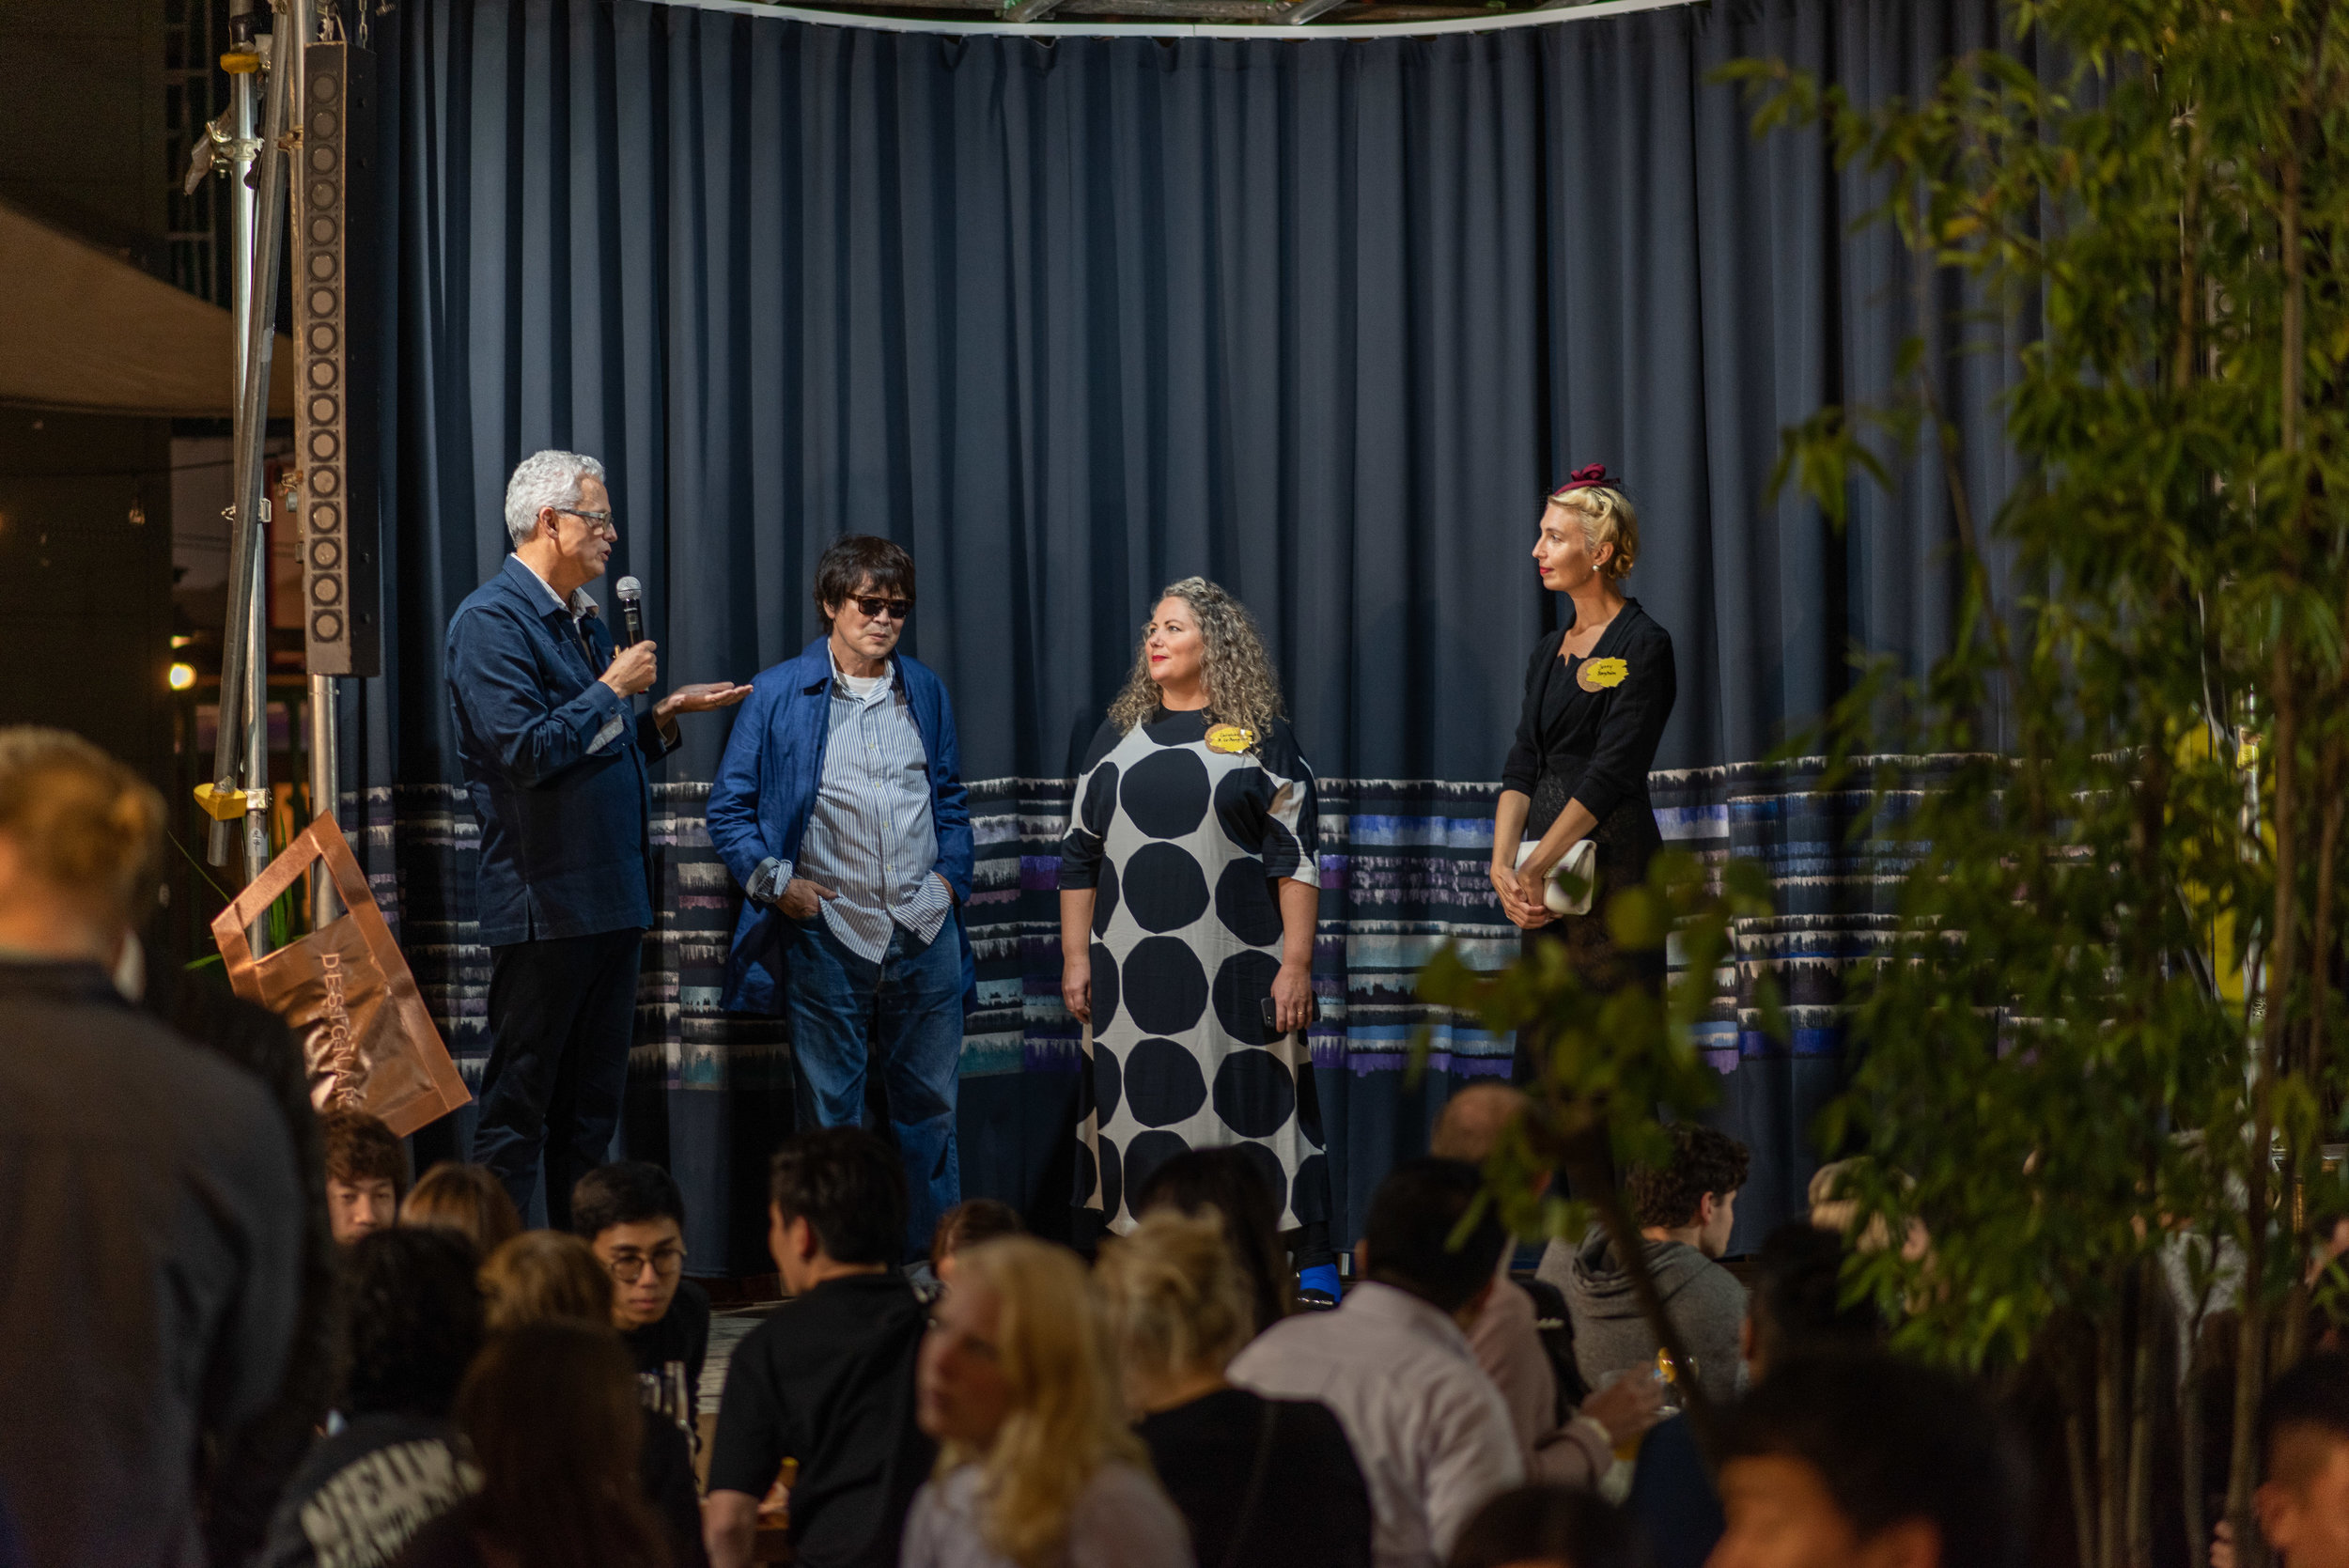 Swedish Design Moves Tokyo - Official photographer for Swedish Designs Moves Tokyo 2018, the most important Swedish design event in Tokyo in 2018. The event was a collaboration between Visit Sweden, the Embassy of Sweden, the Swedish Institute and Svensk Form.